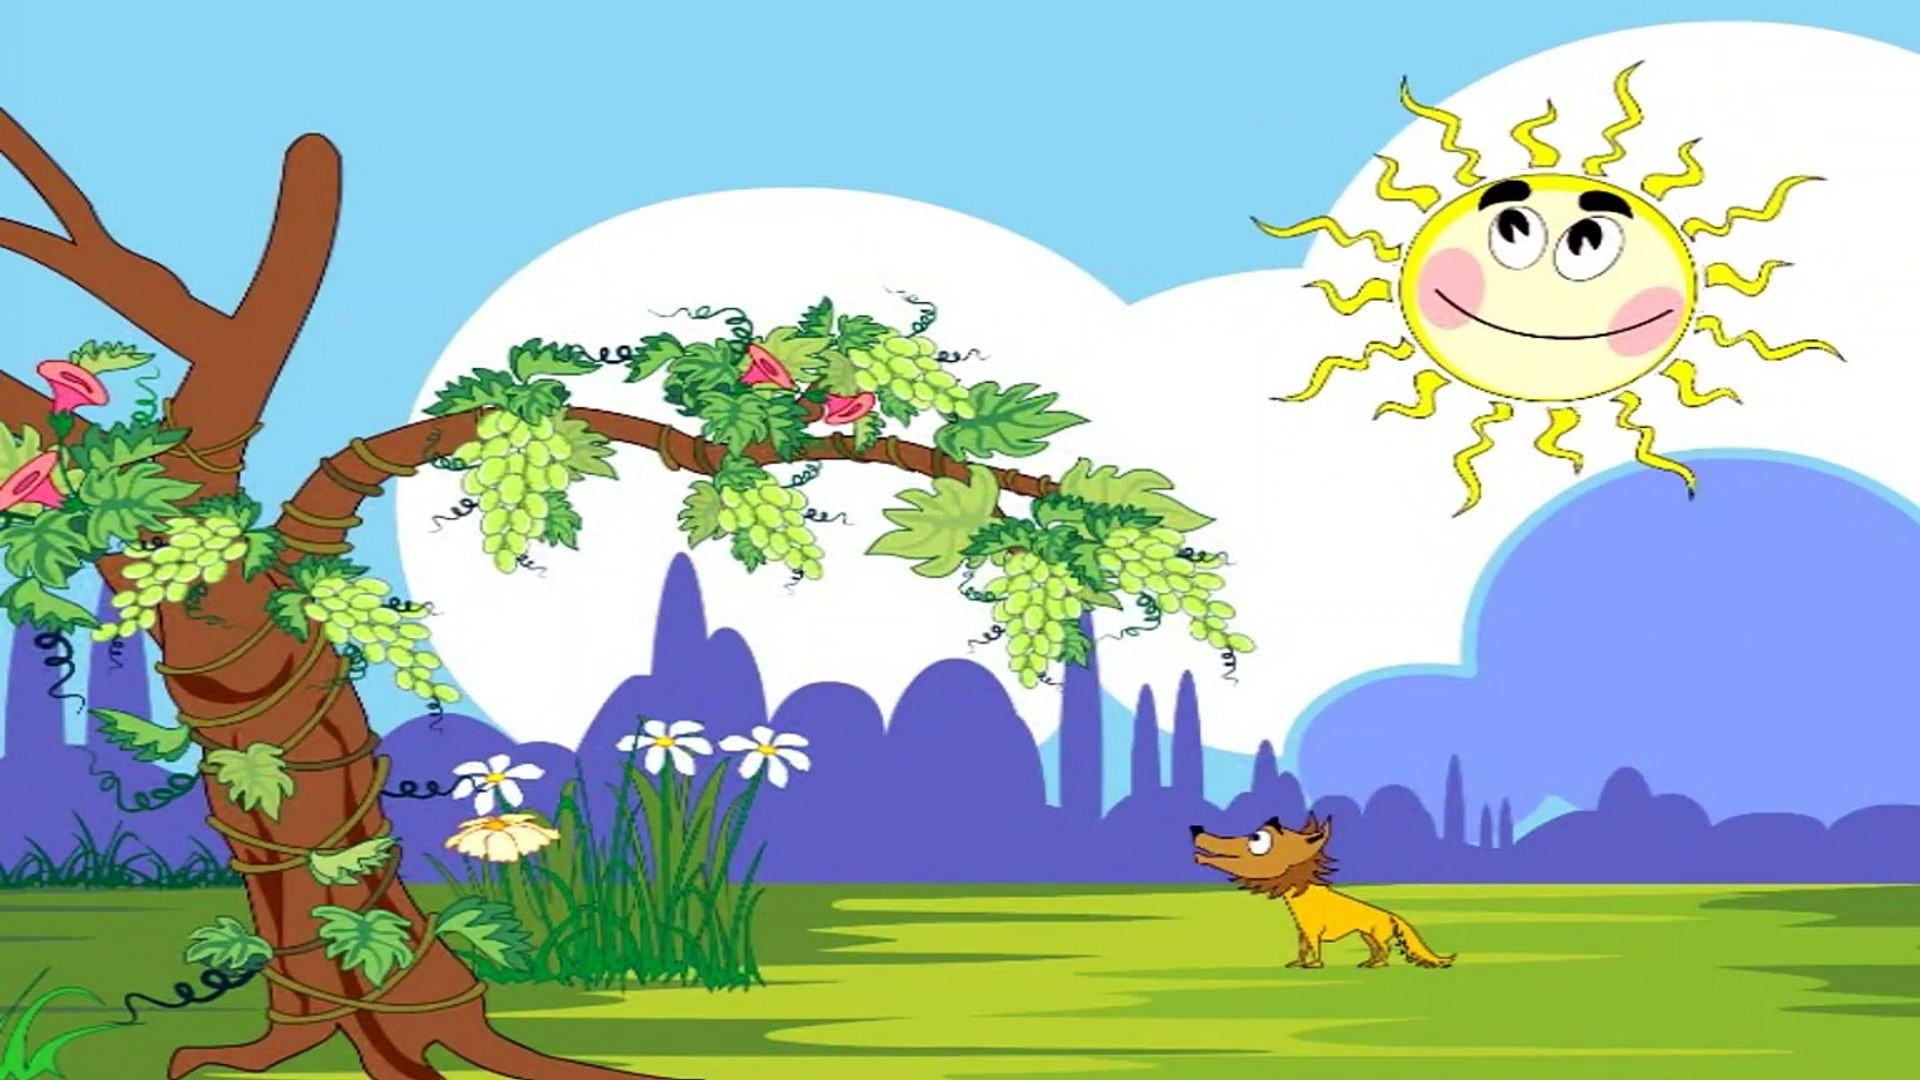 Moral Stories - Compiled Animation - English Short Stories - Kids Education